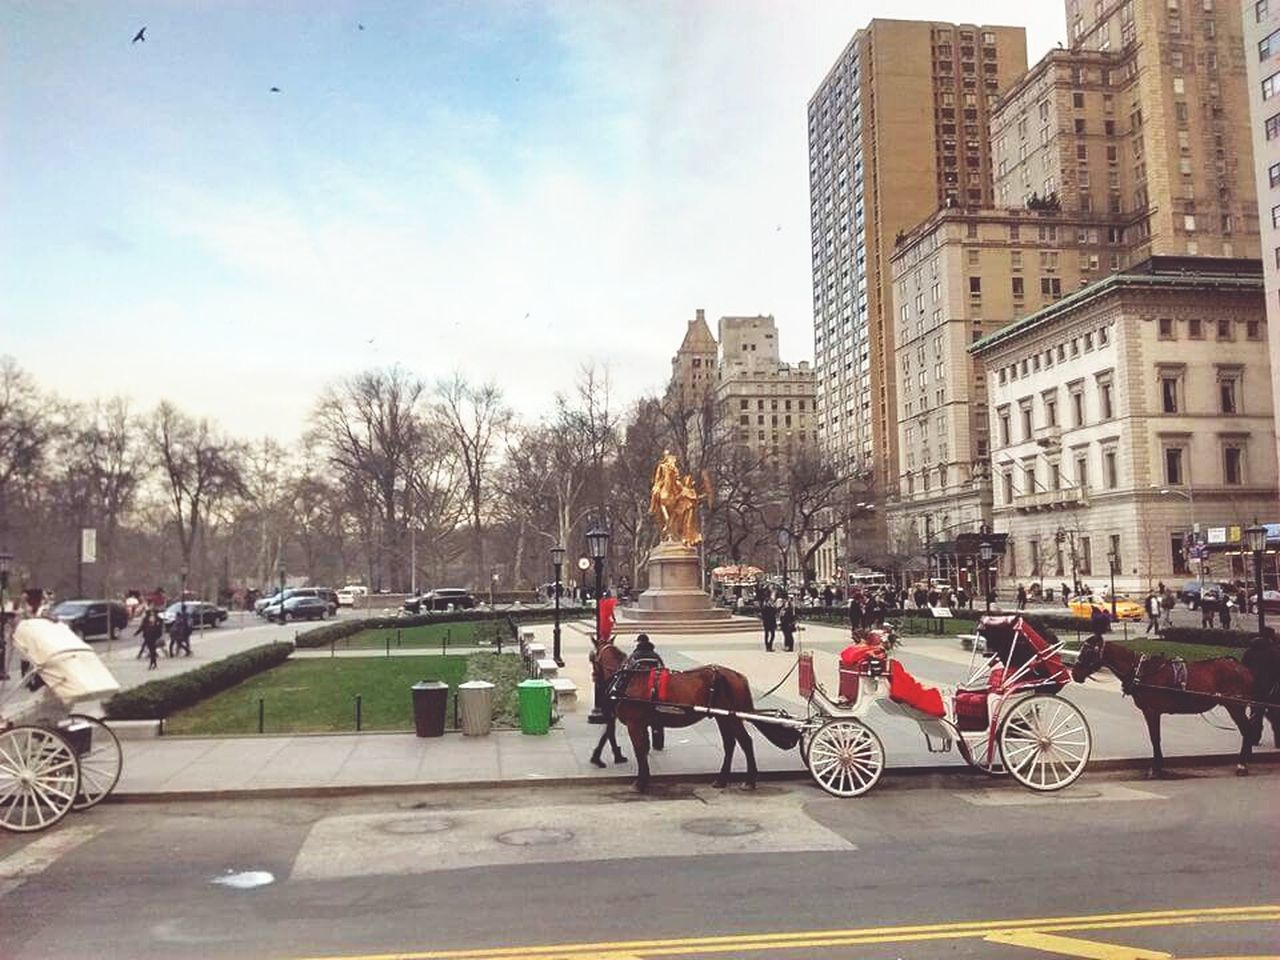 horse, architecture, building exterior, street, built structure, sky, real people, city, transportation, domestic animals, men, riding, horseback riding, horse cart, road, day, mammal, outdoors, tree, adult, people